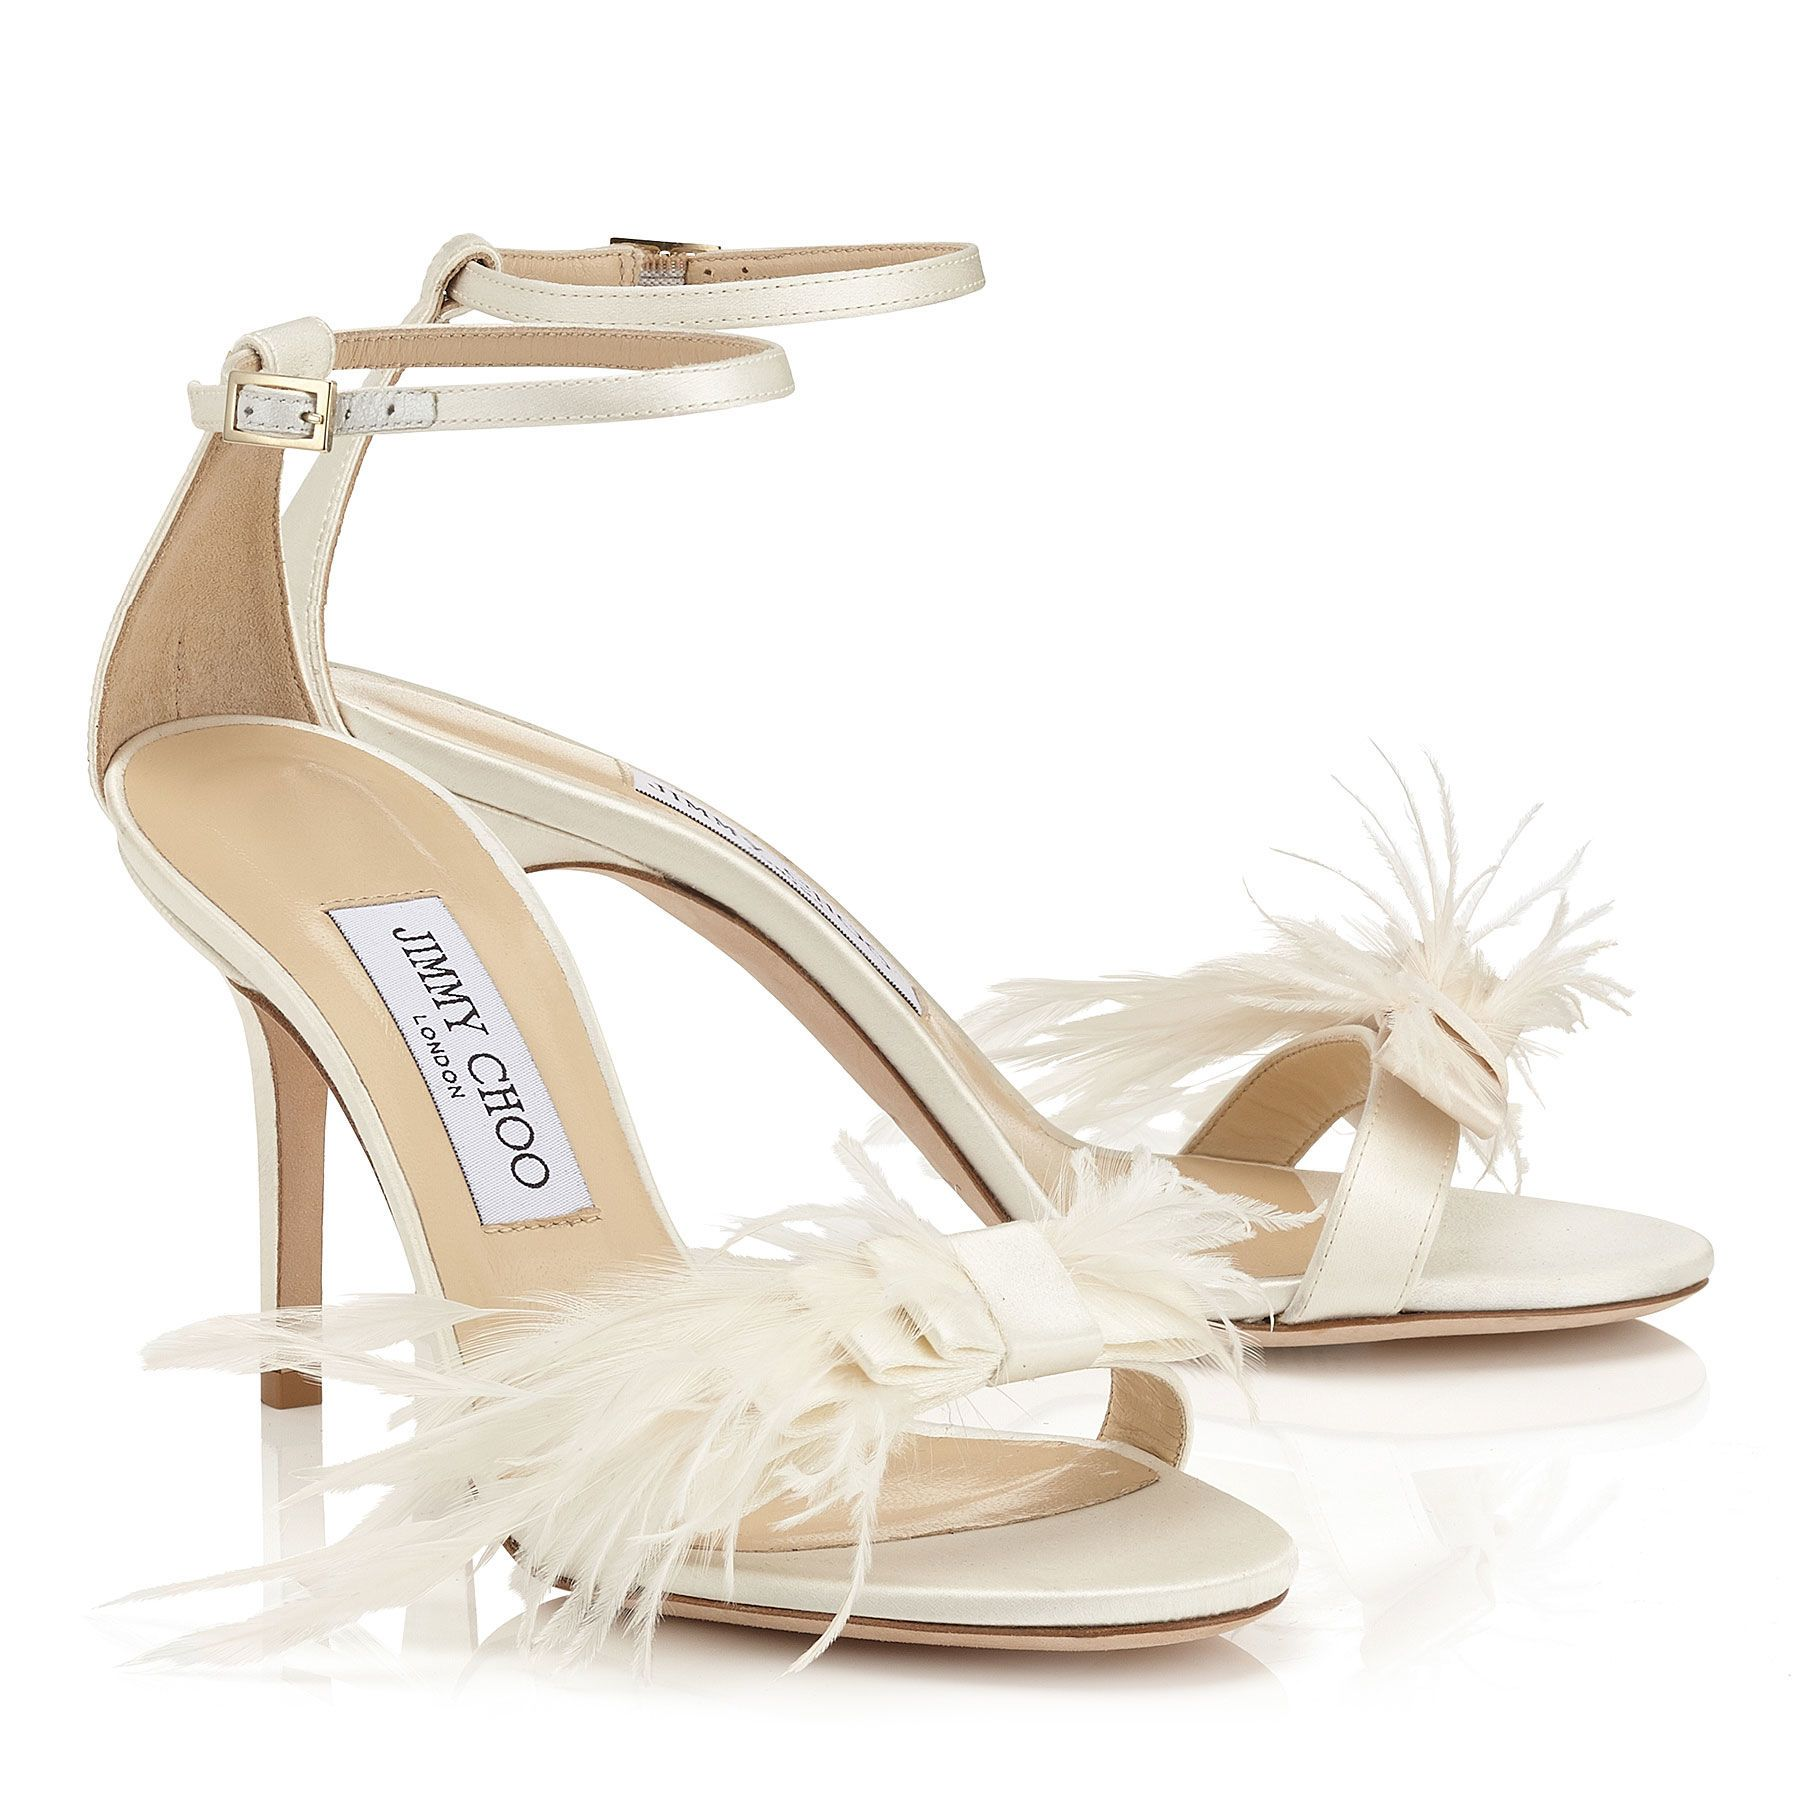 Ivory Satin Sandals with Feather Bow Vivien 85 Cruise